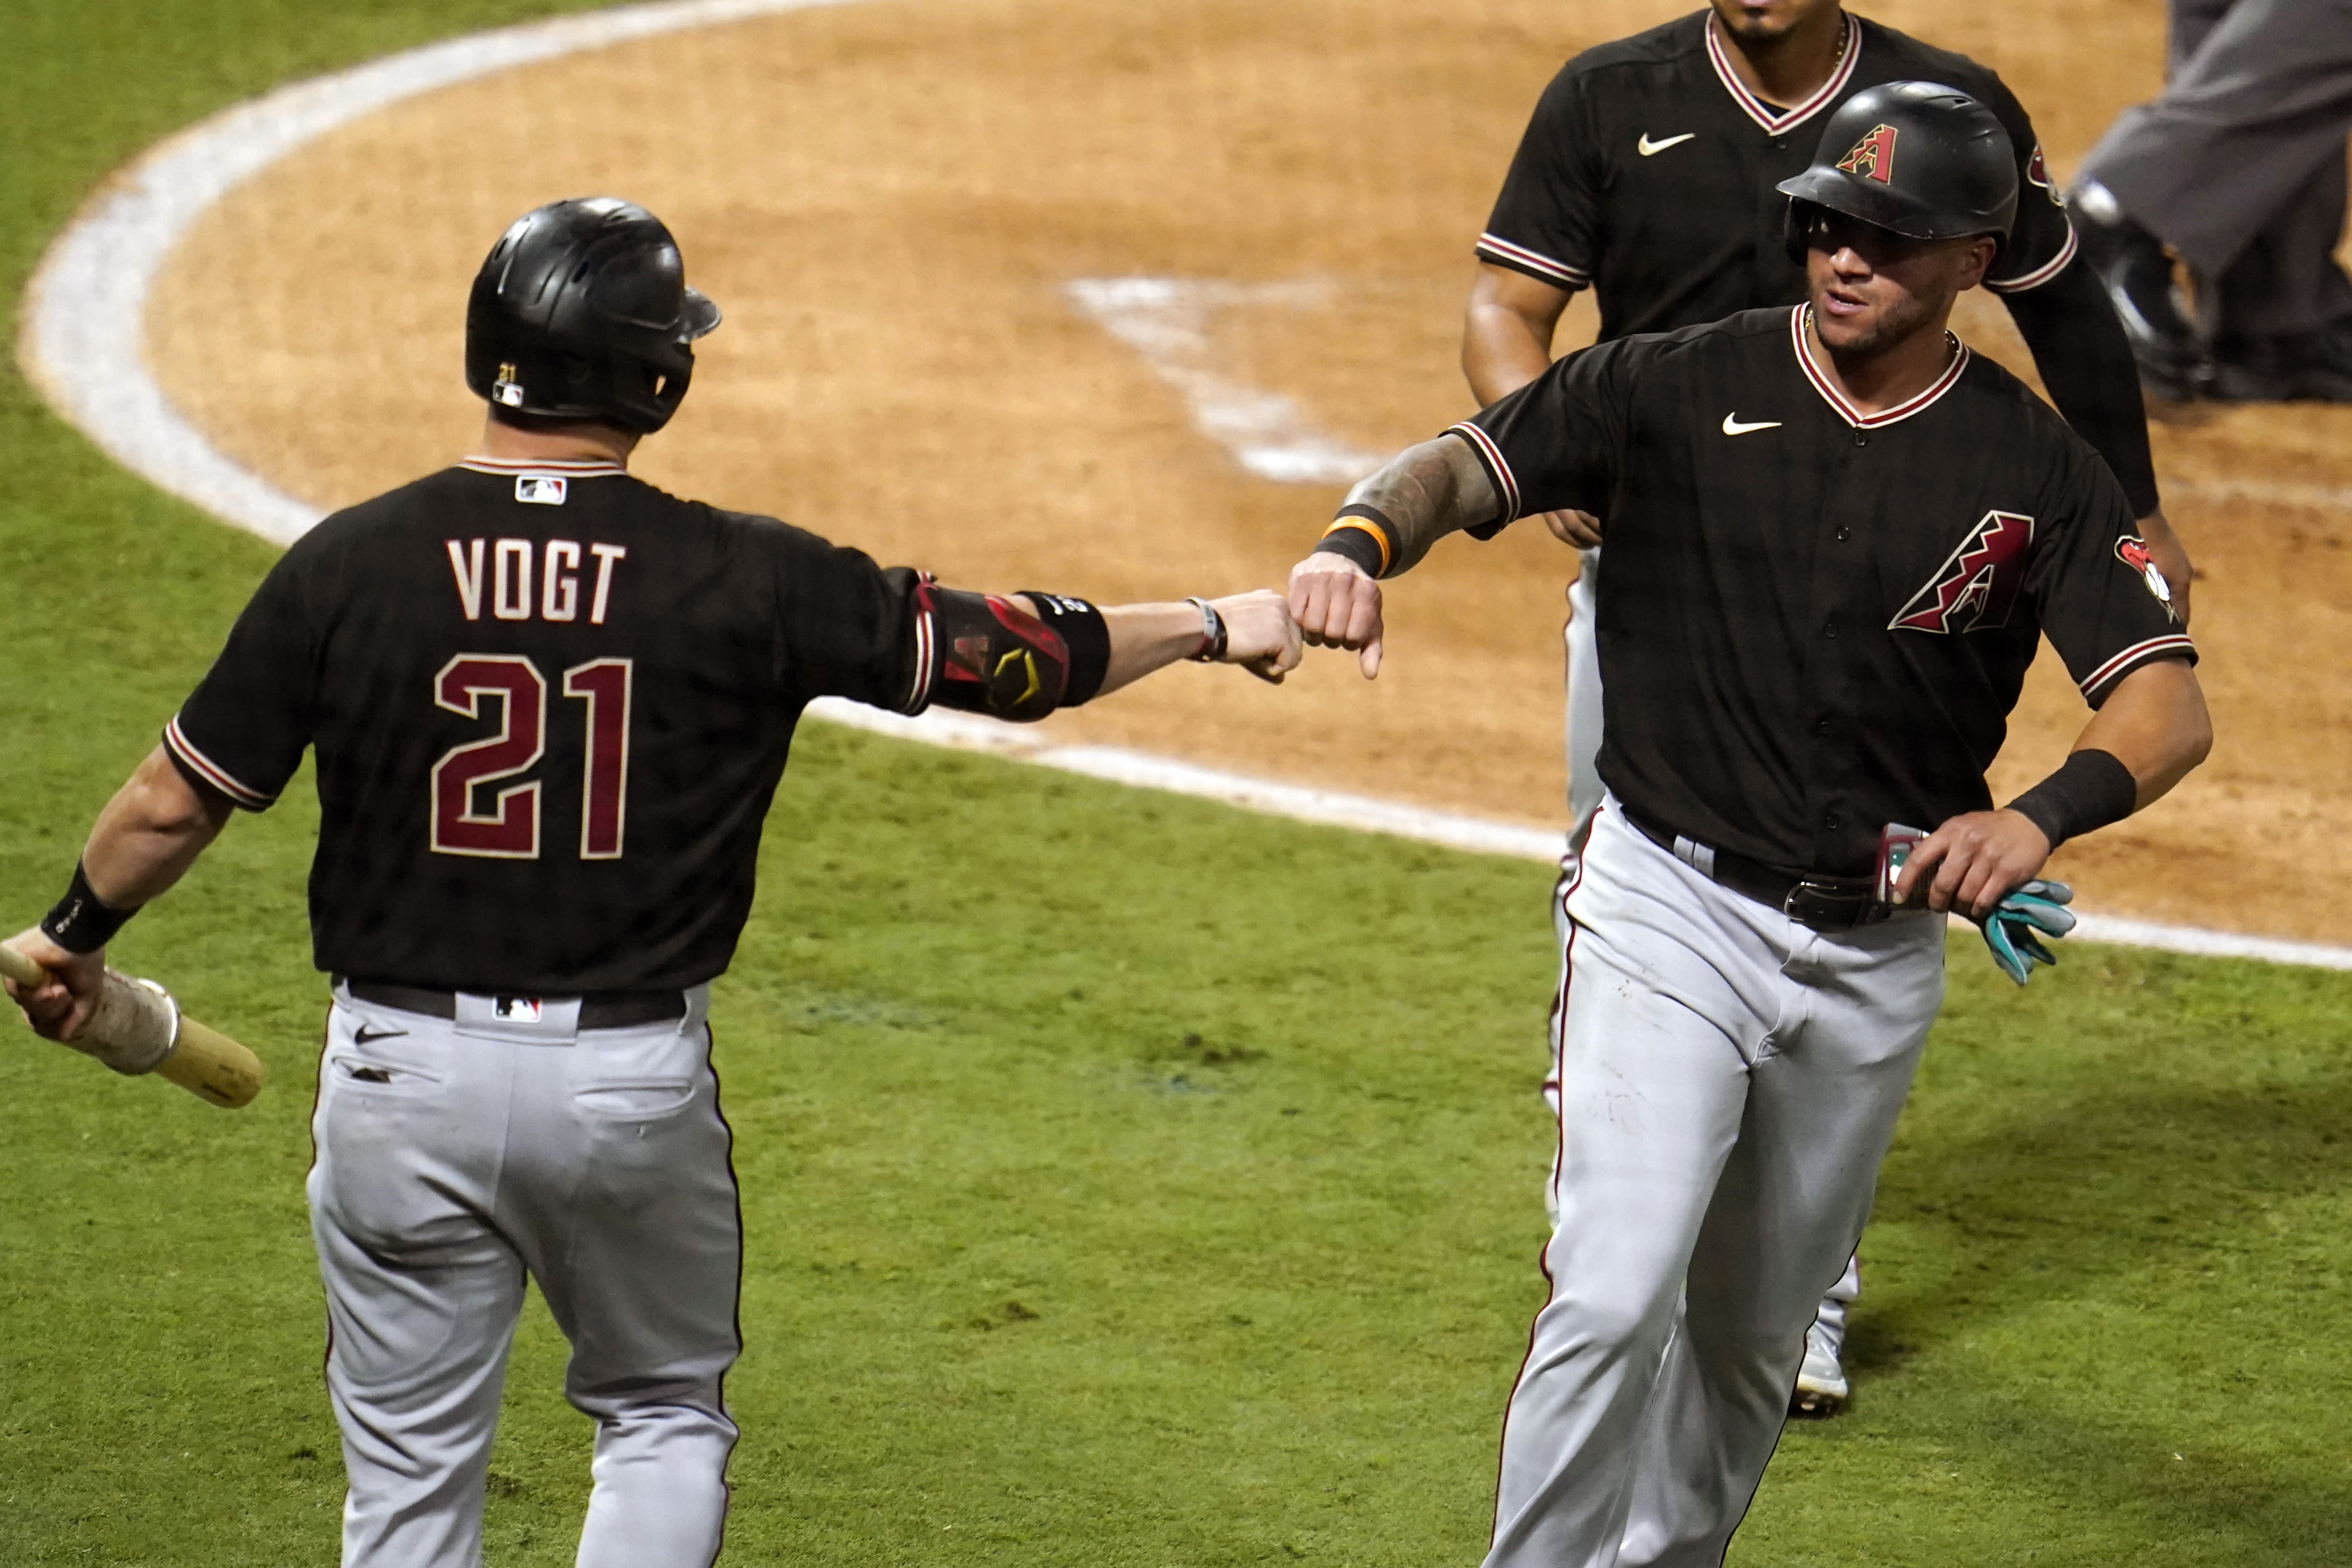 Arizona Diamondbacks' David Peralta, right, bumps fists with Stephen Vogt after Peralta score on a single from Nick Ahmed during the second inning of a baseball game against the Los Angeles Angels Wednesday, Sept. 16, 2020, in Anaheim, Calif. (AP Photo/Marcio Jose Sanchez)